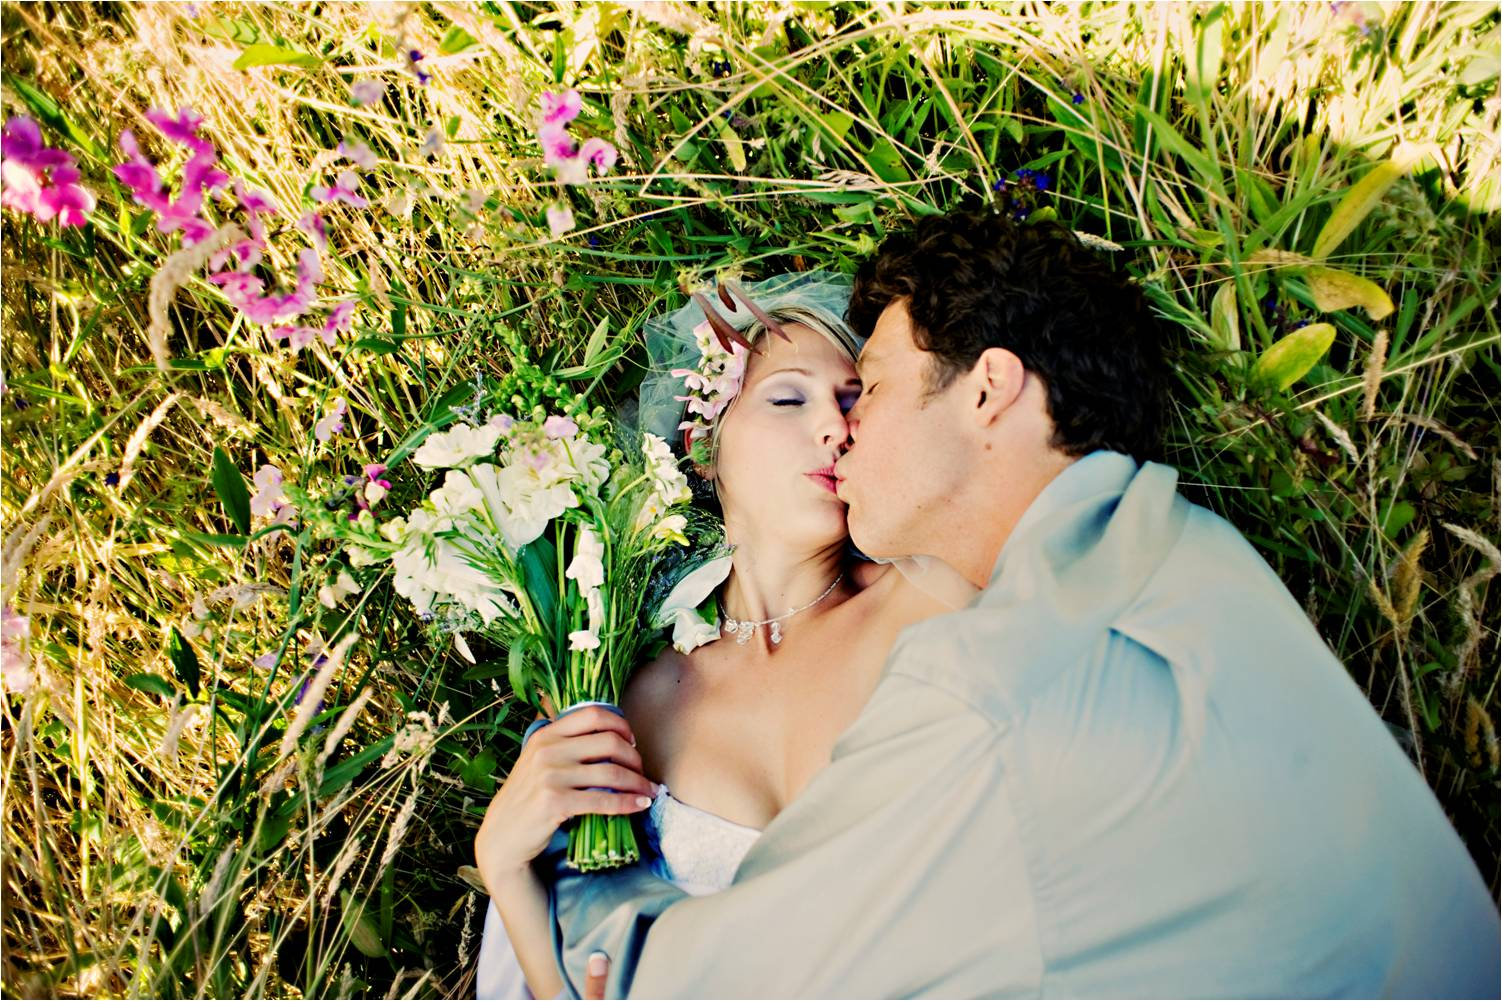 Bride and groom lay in grass in full wedding attire after